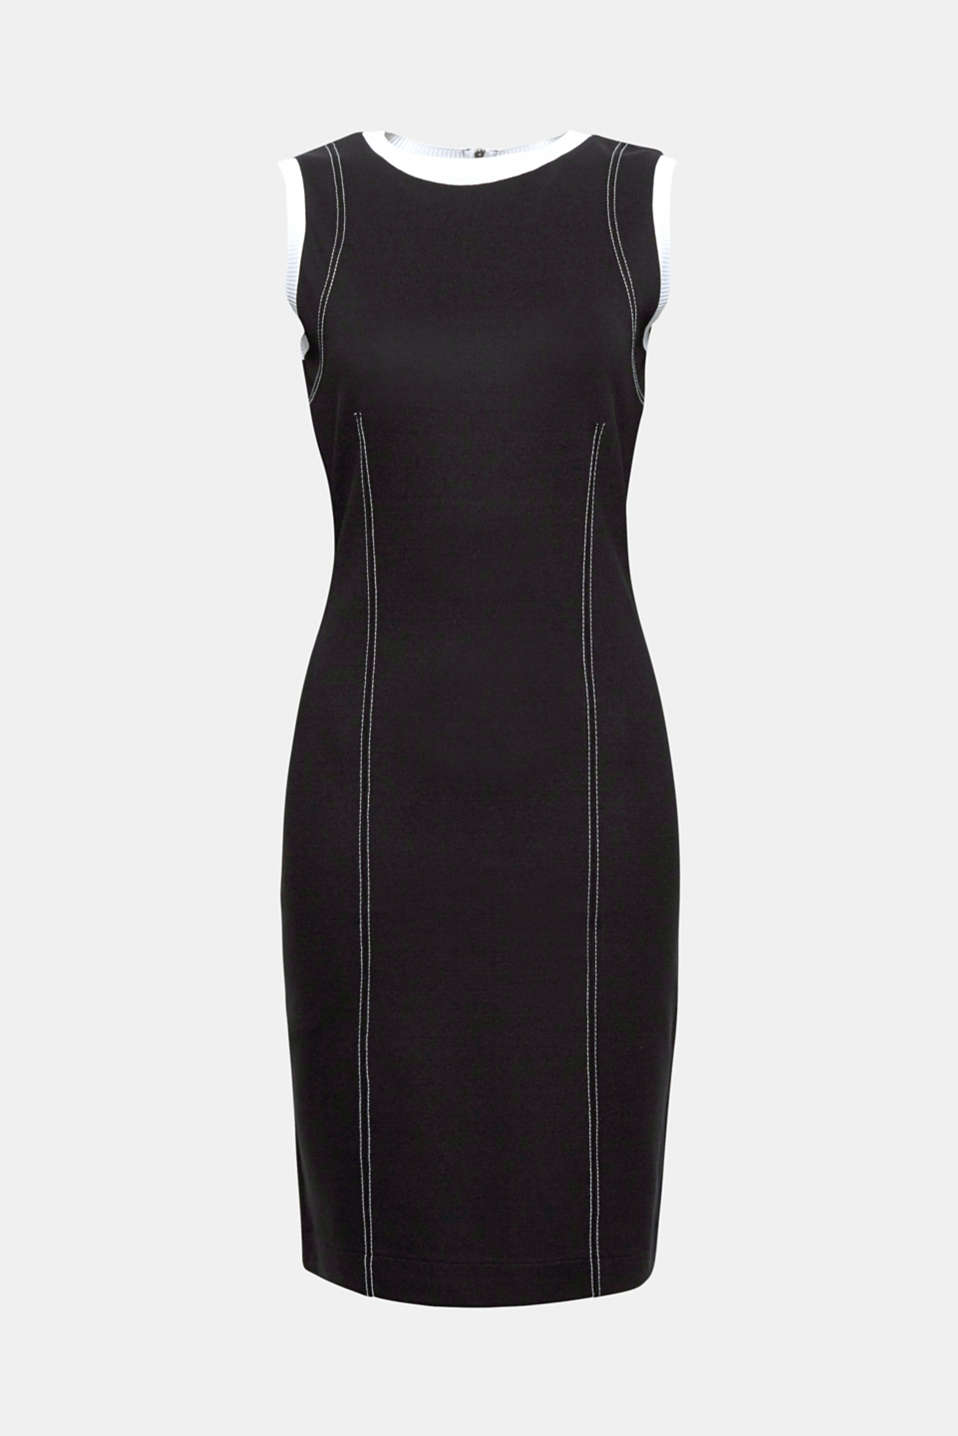 Can be worn to the office or evening events: Bodycon stretch dress with accentuating contrast details